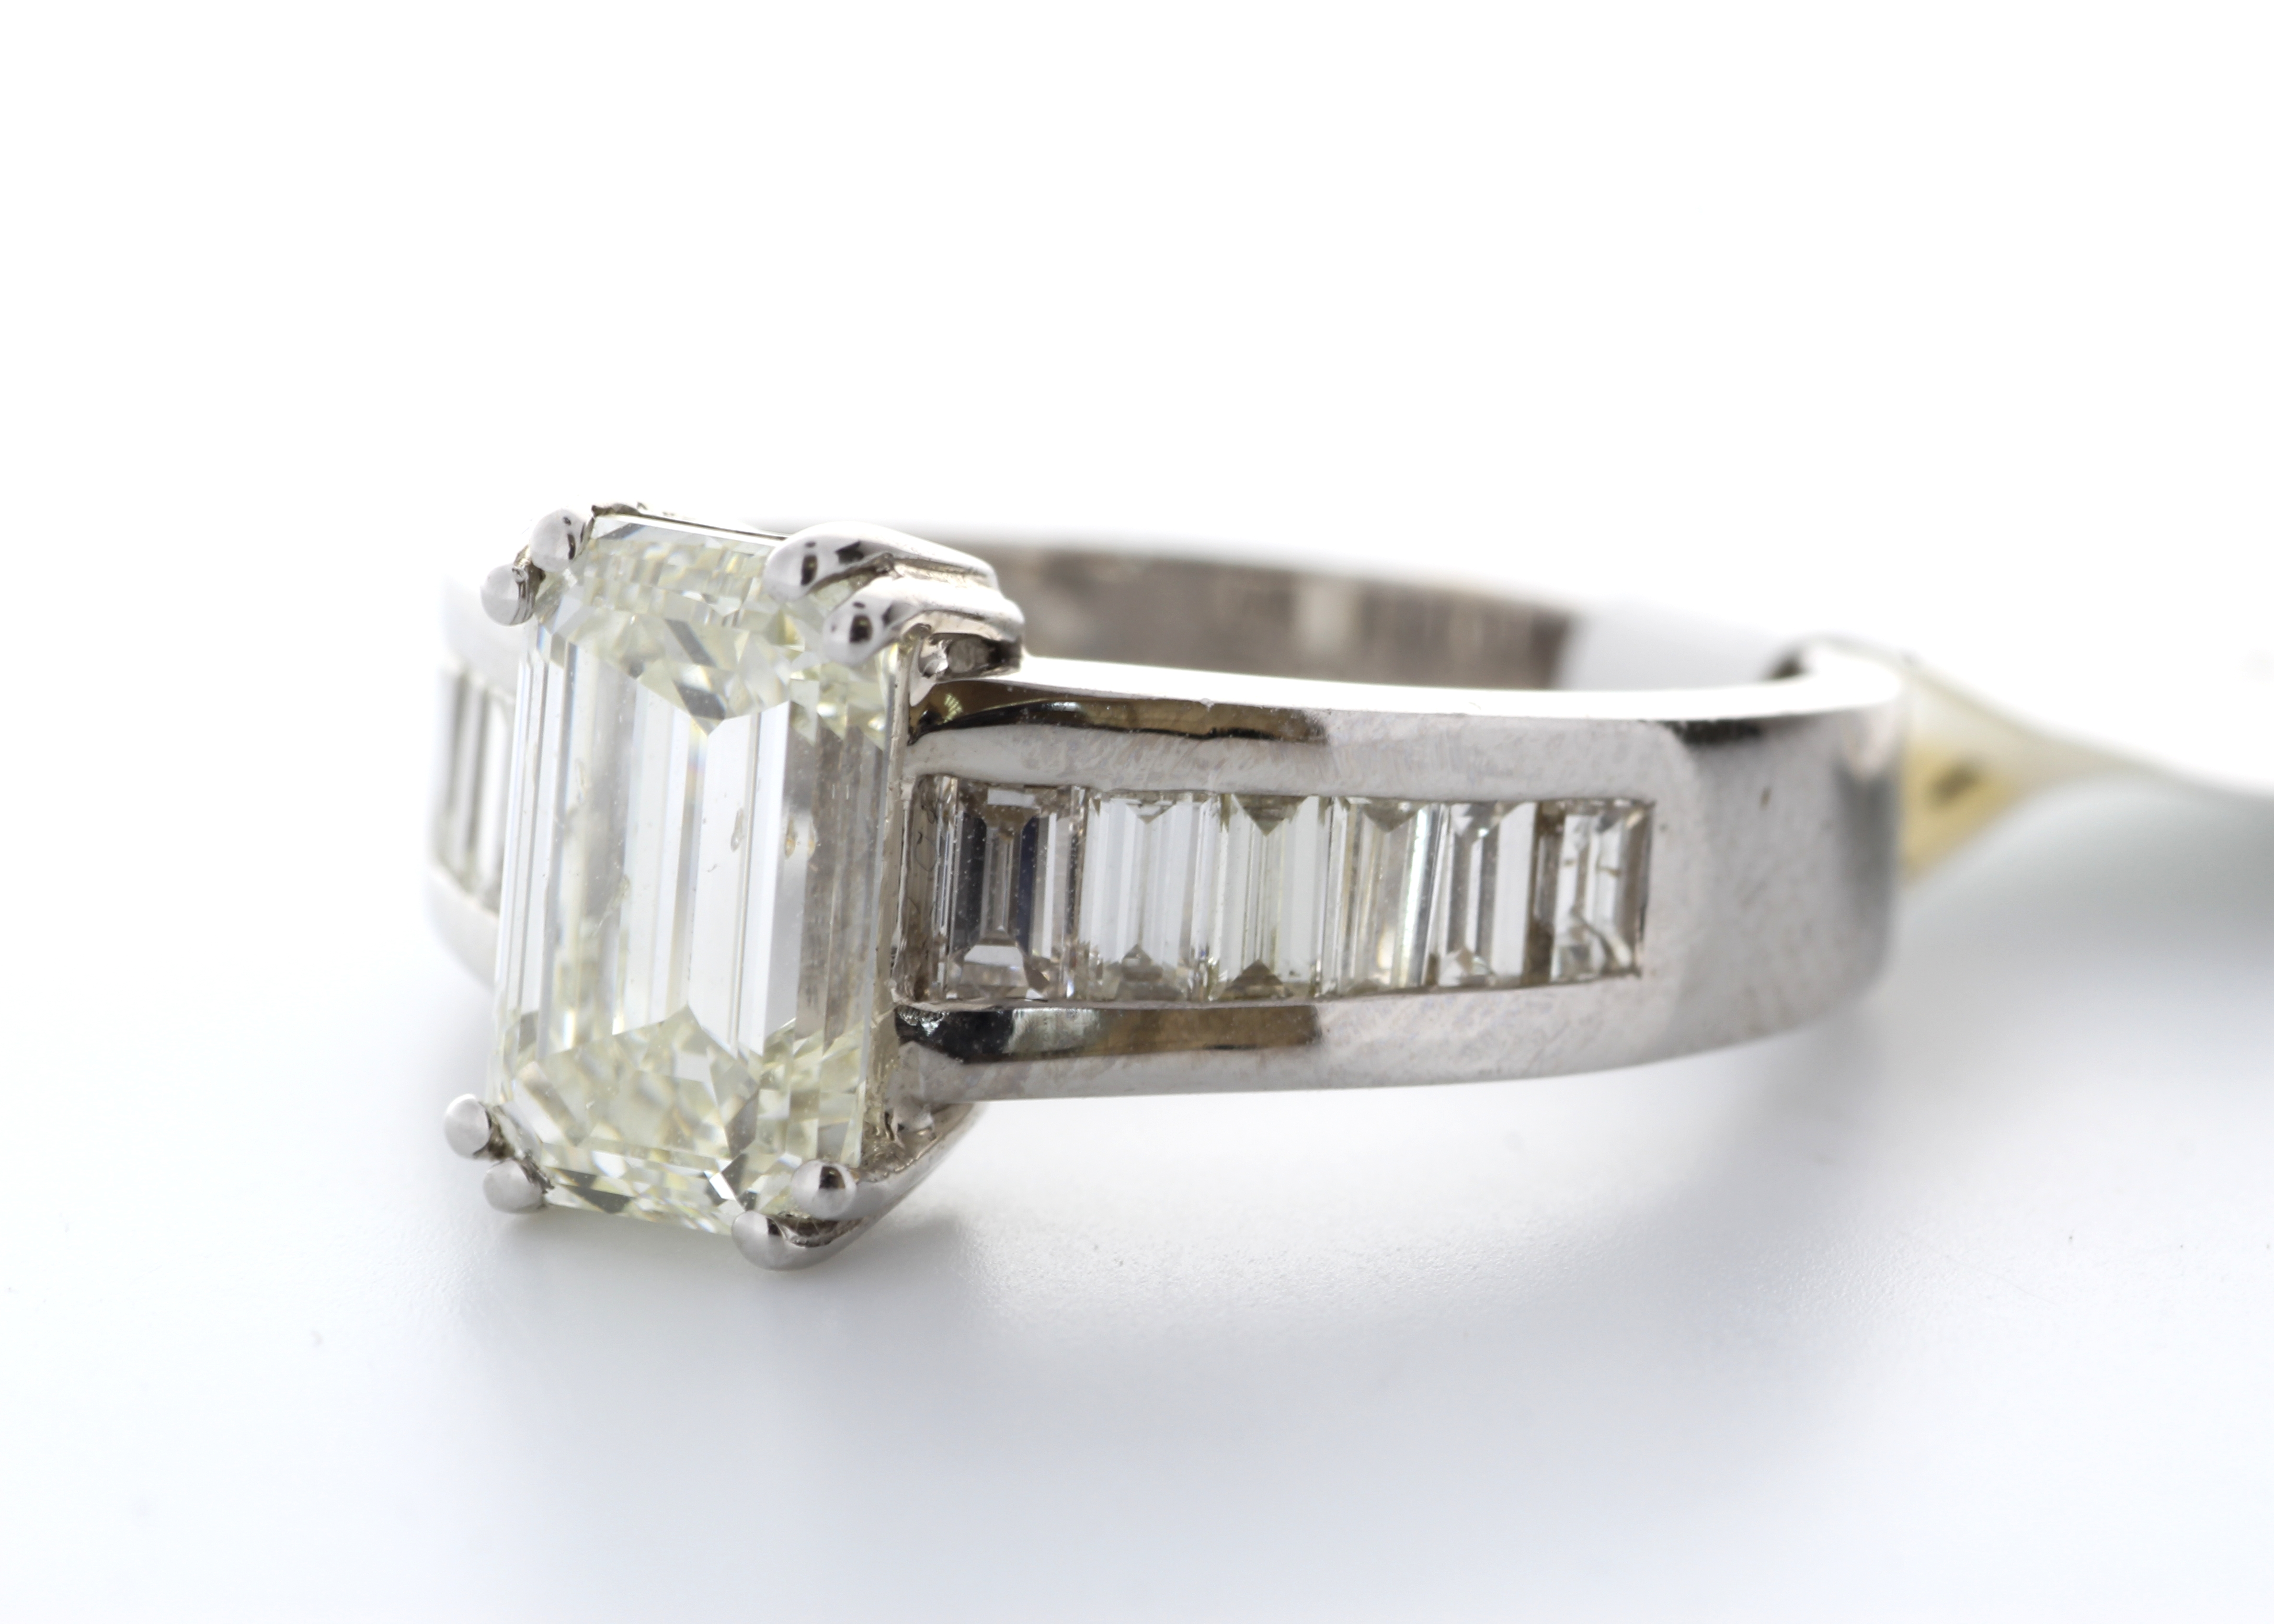 18k White Gold Single Stone Claw Set Emerald Cut With Stone Set Shoulders Diamond Ring (2.05) 2.90 - Image 2 of 3